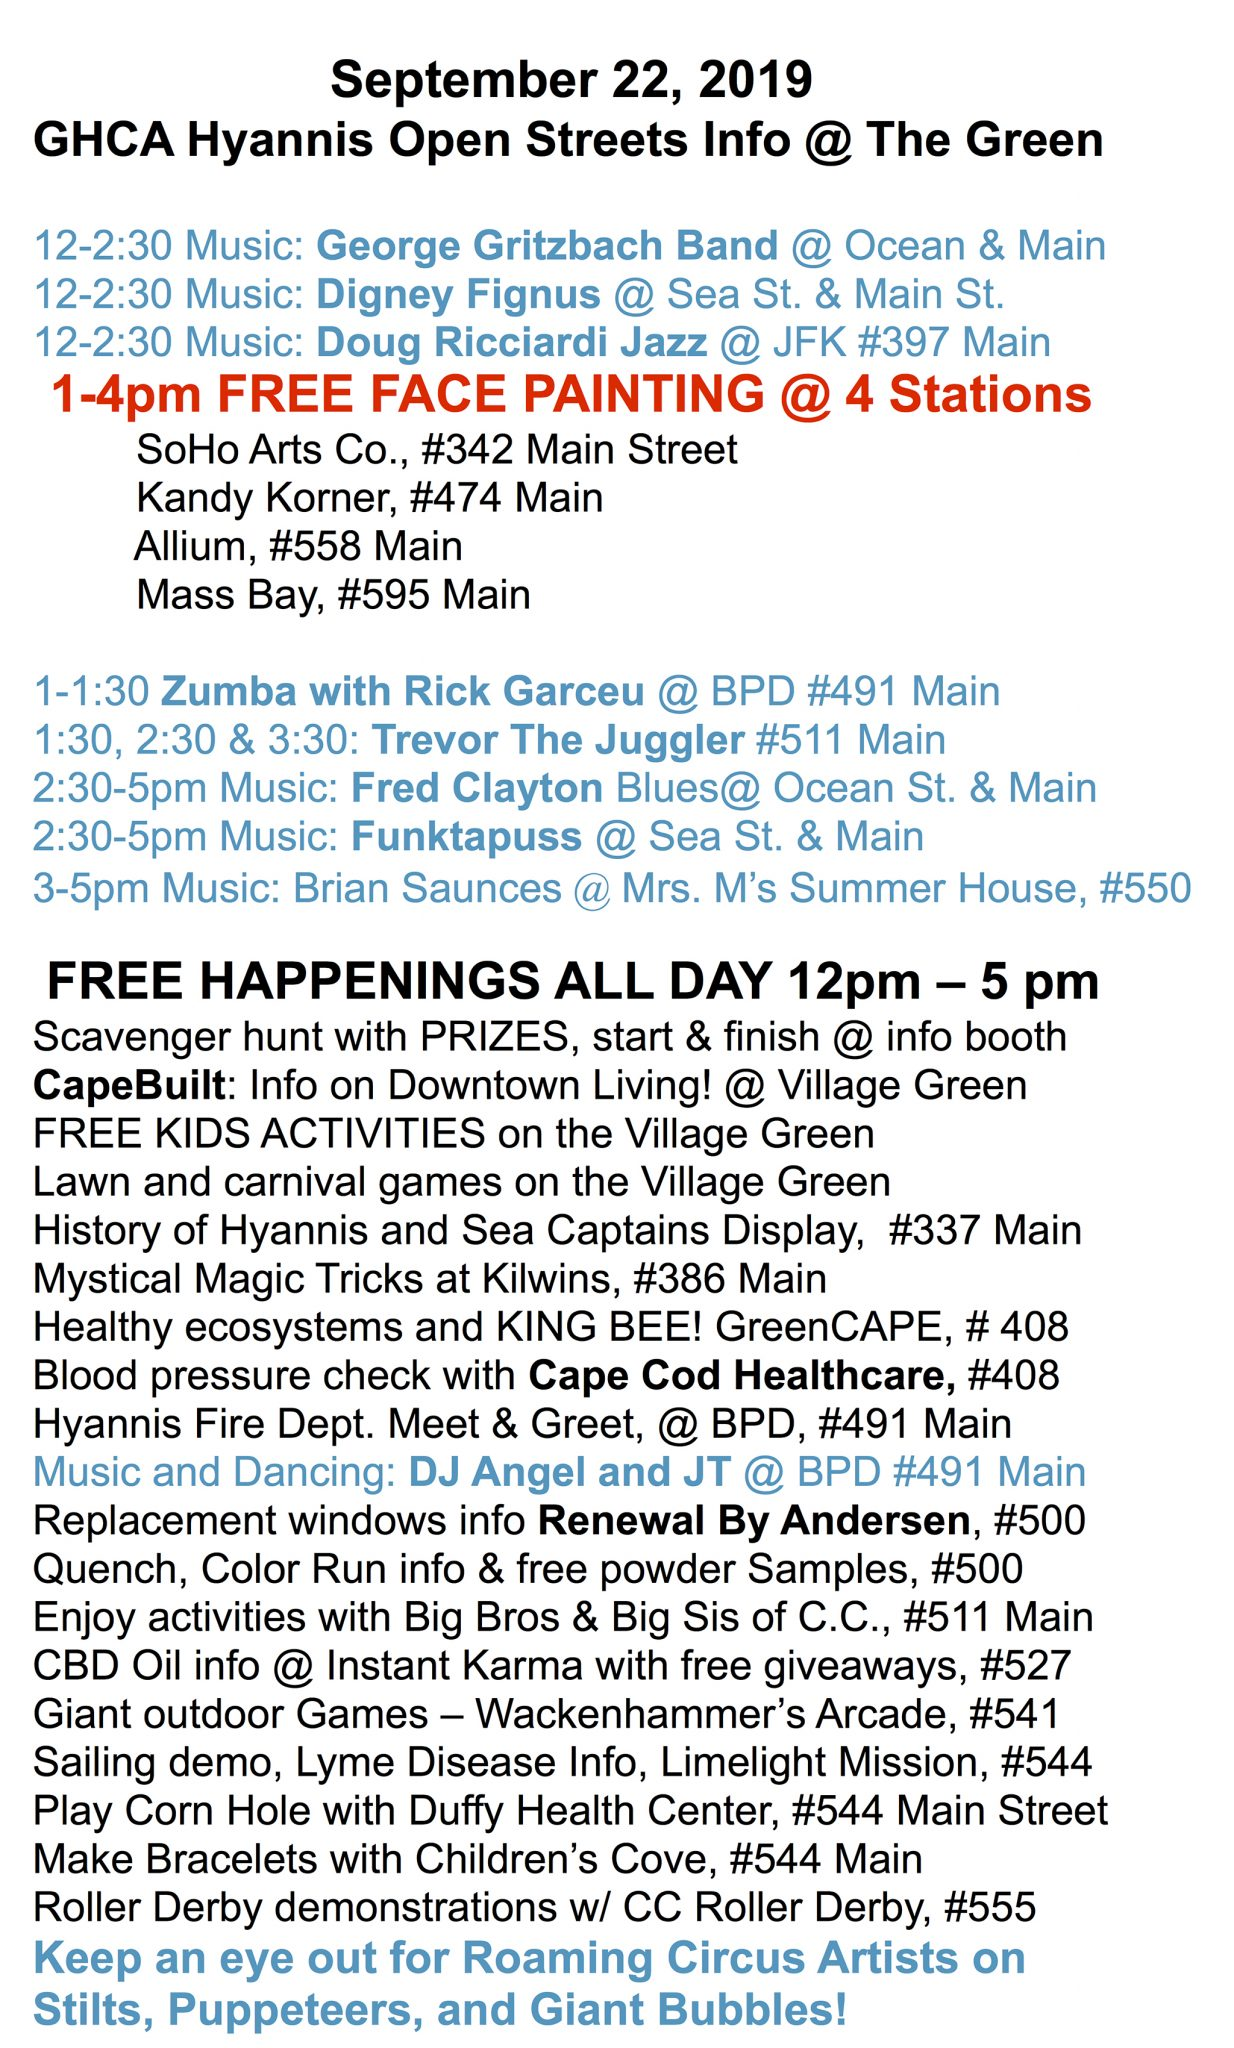 Schedule of events for the September 2019 Hyannis Open Streets